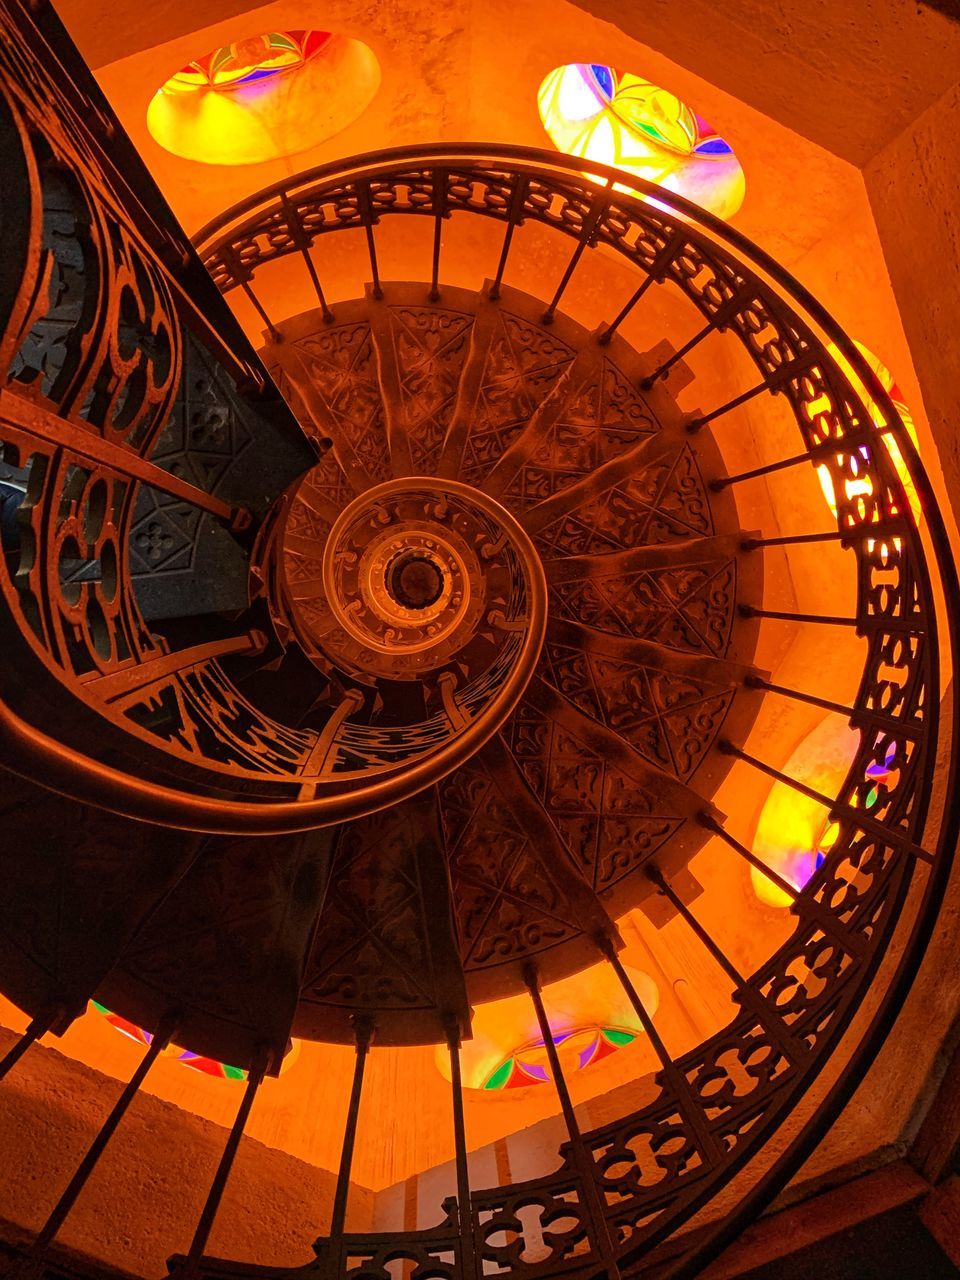 architecture, built structure, indoors, staircase, pattern, steps and staircases, illuminated, no people, railing, spiral, building, travel destinations, low angle view, spiral staircase, design, directly below, ceiling, travel, tourism, ornate